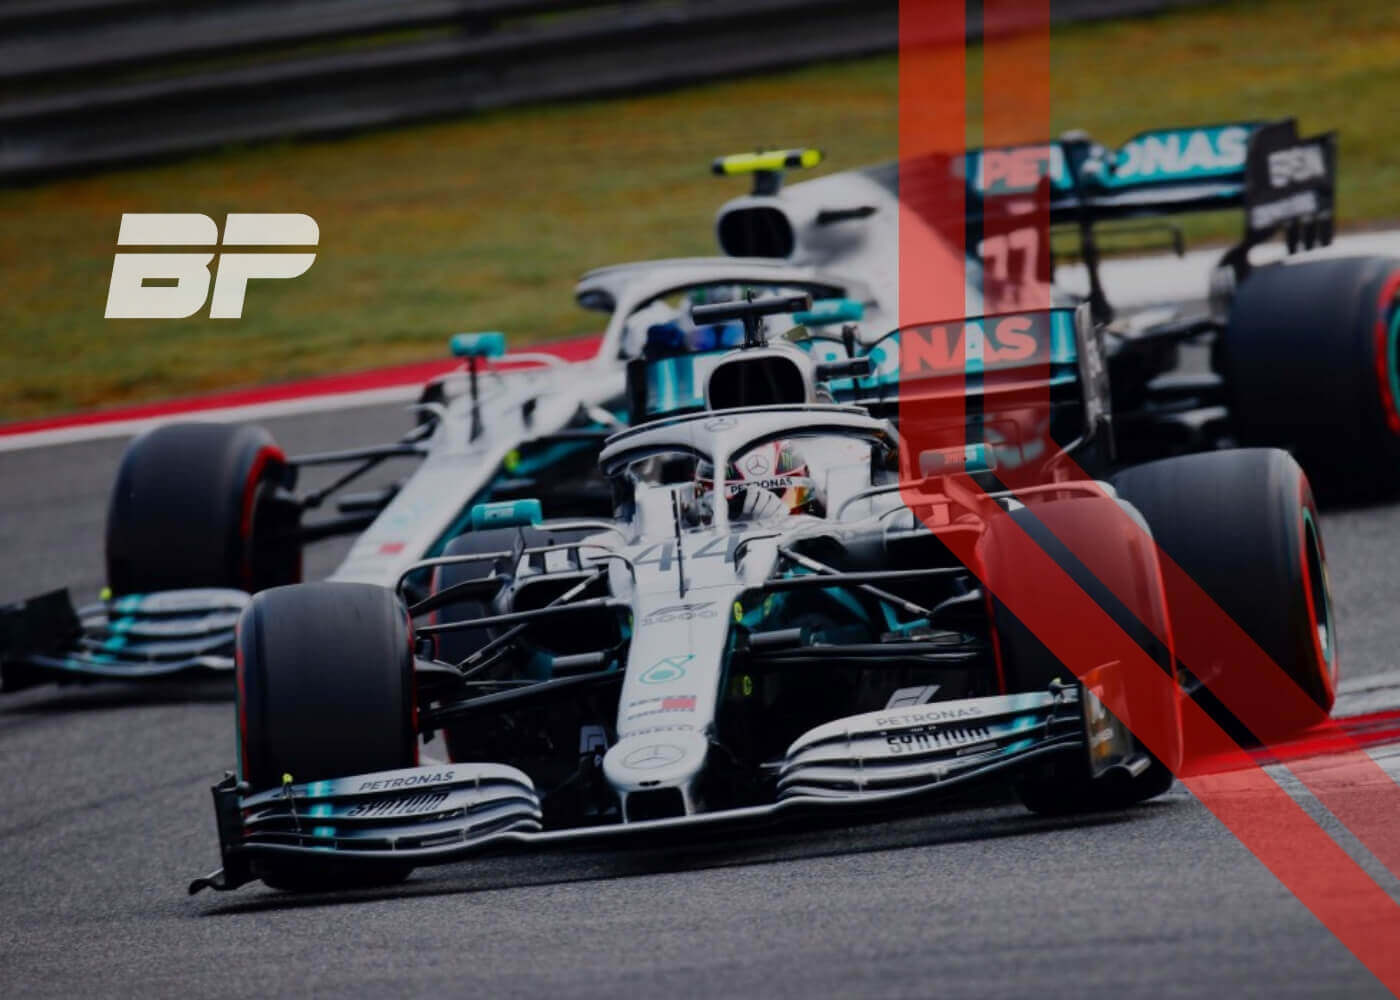 Photo of GP da China – Lewis Hamilton vence corrida 1000 em dia de atritos na Ferrari